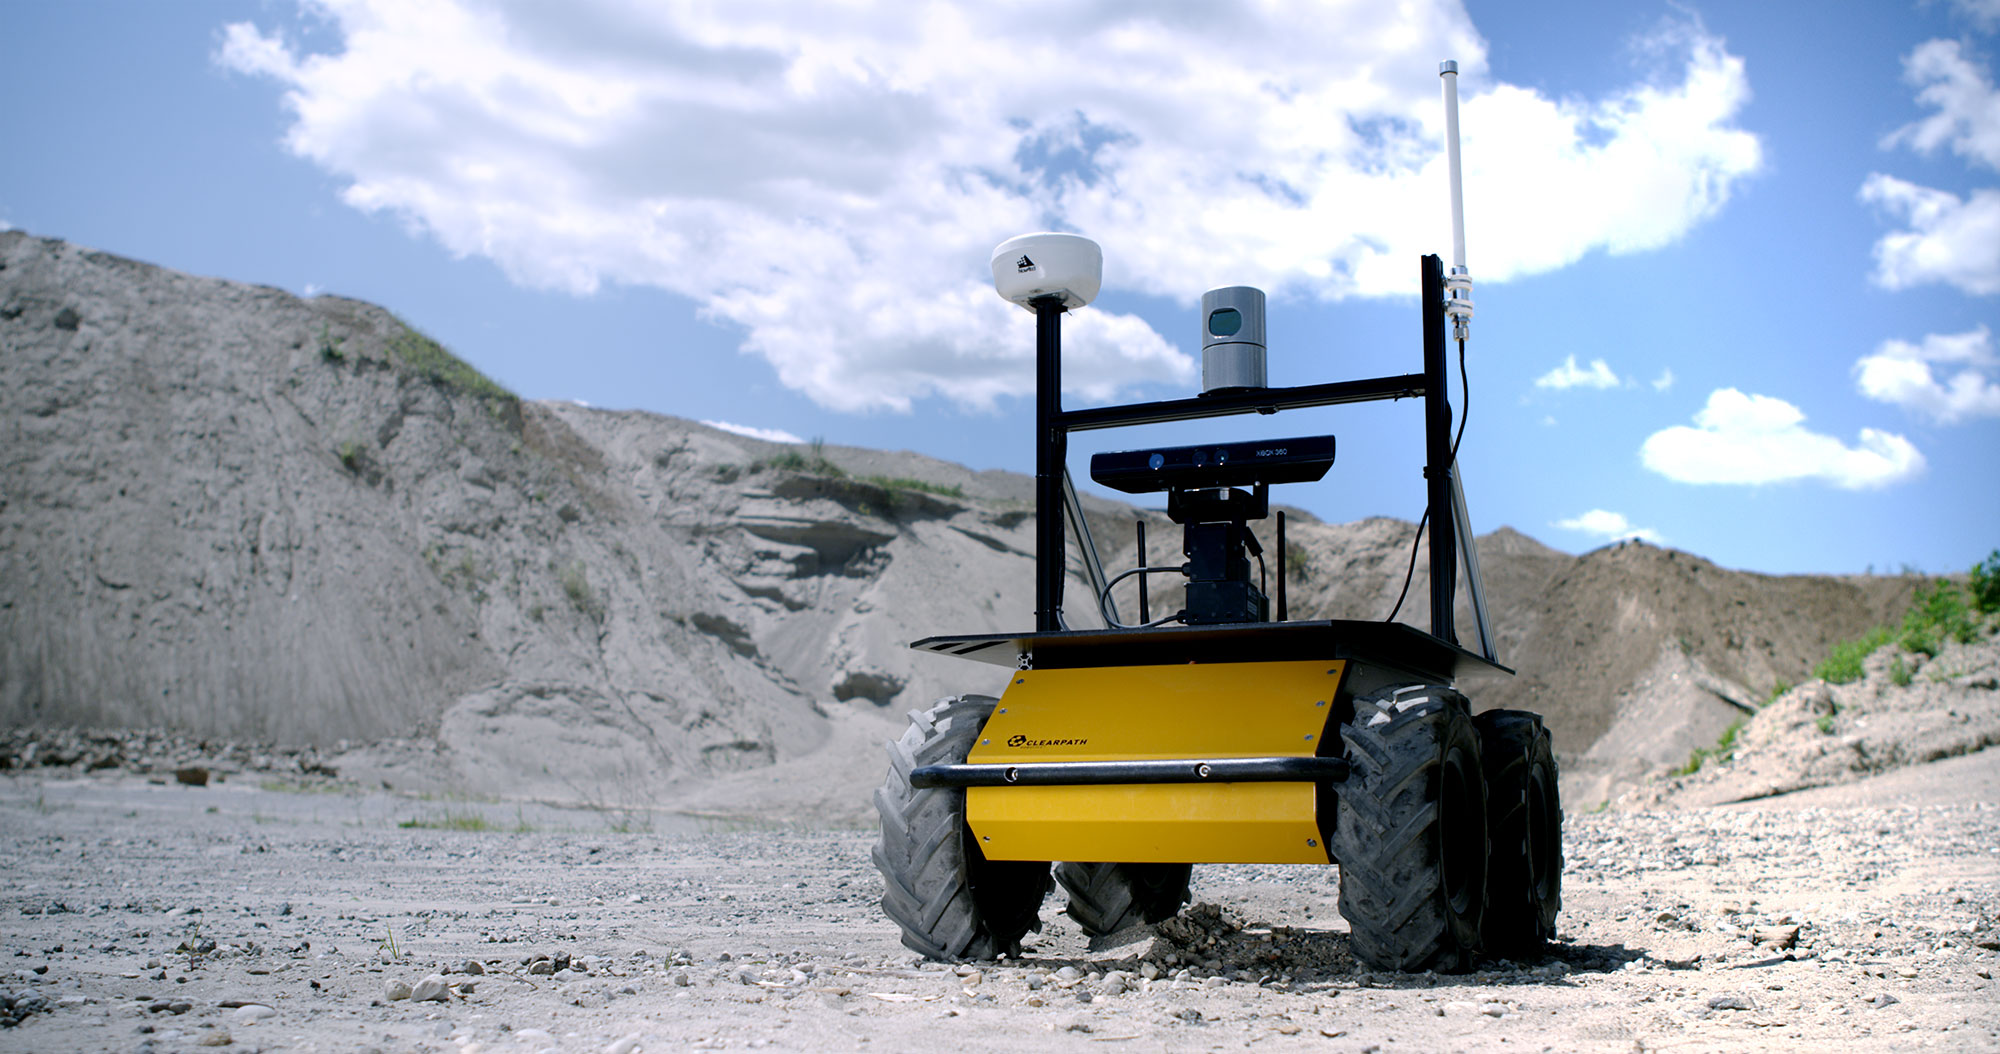 Black Yellow Husky Robot GPS Lidar Gravel Pit